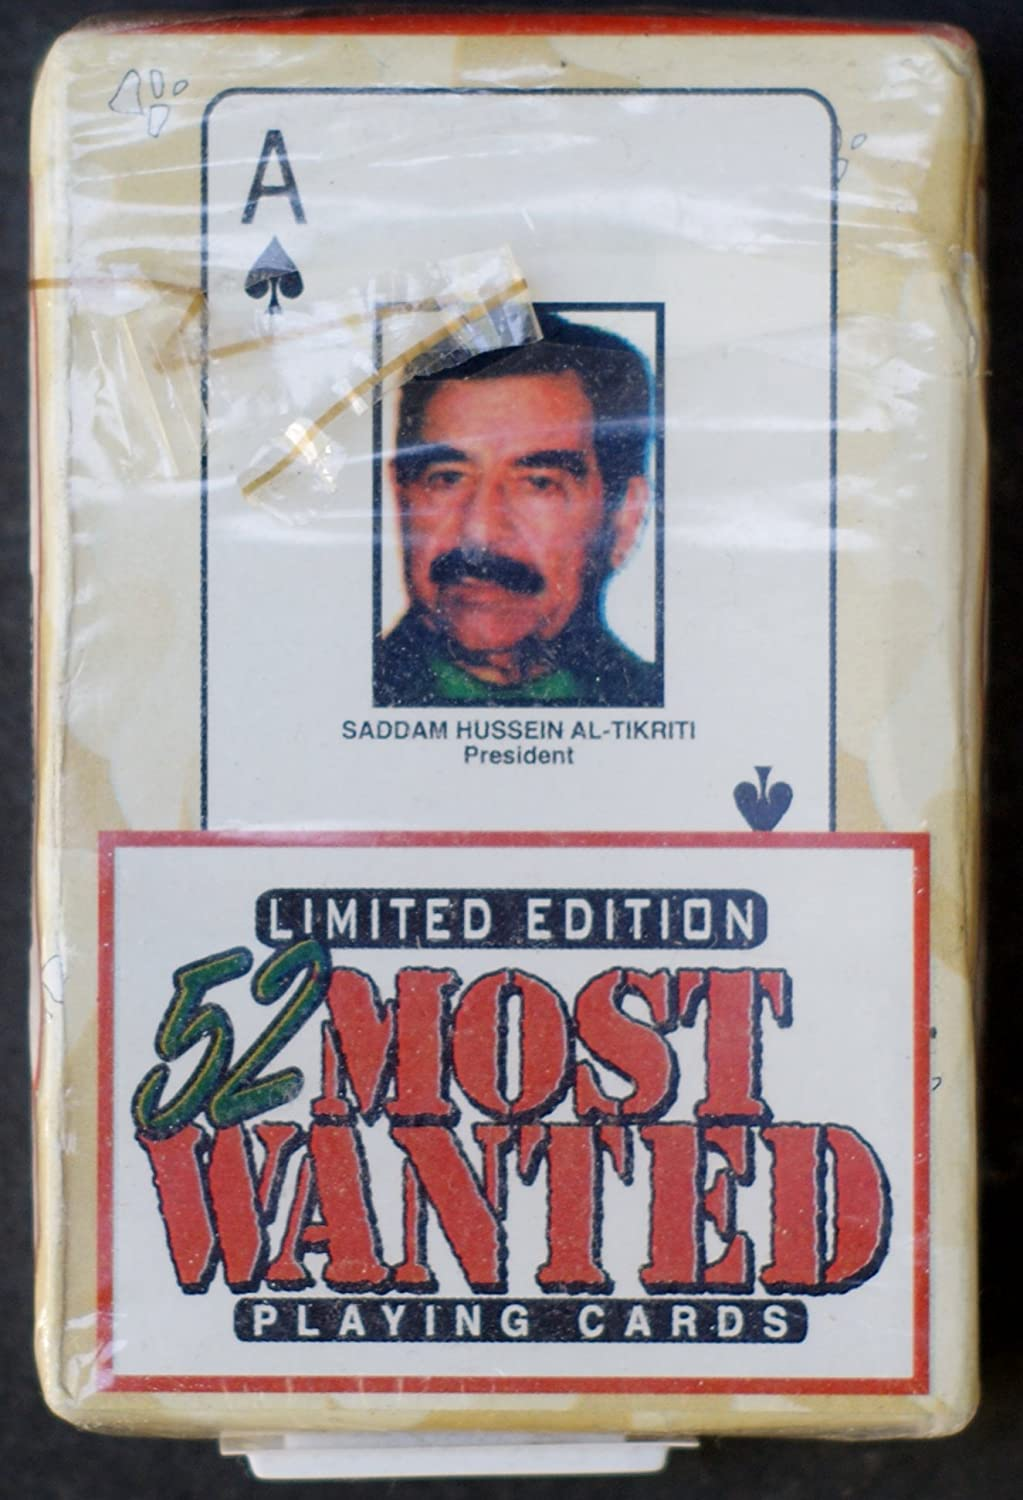 Playing Cards Limited Edition 52 Most Wanted Terrorists in Iraq and Afghanistan